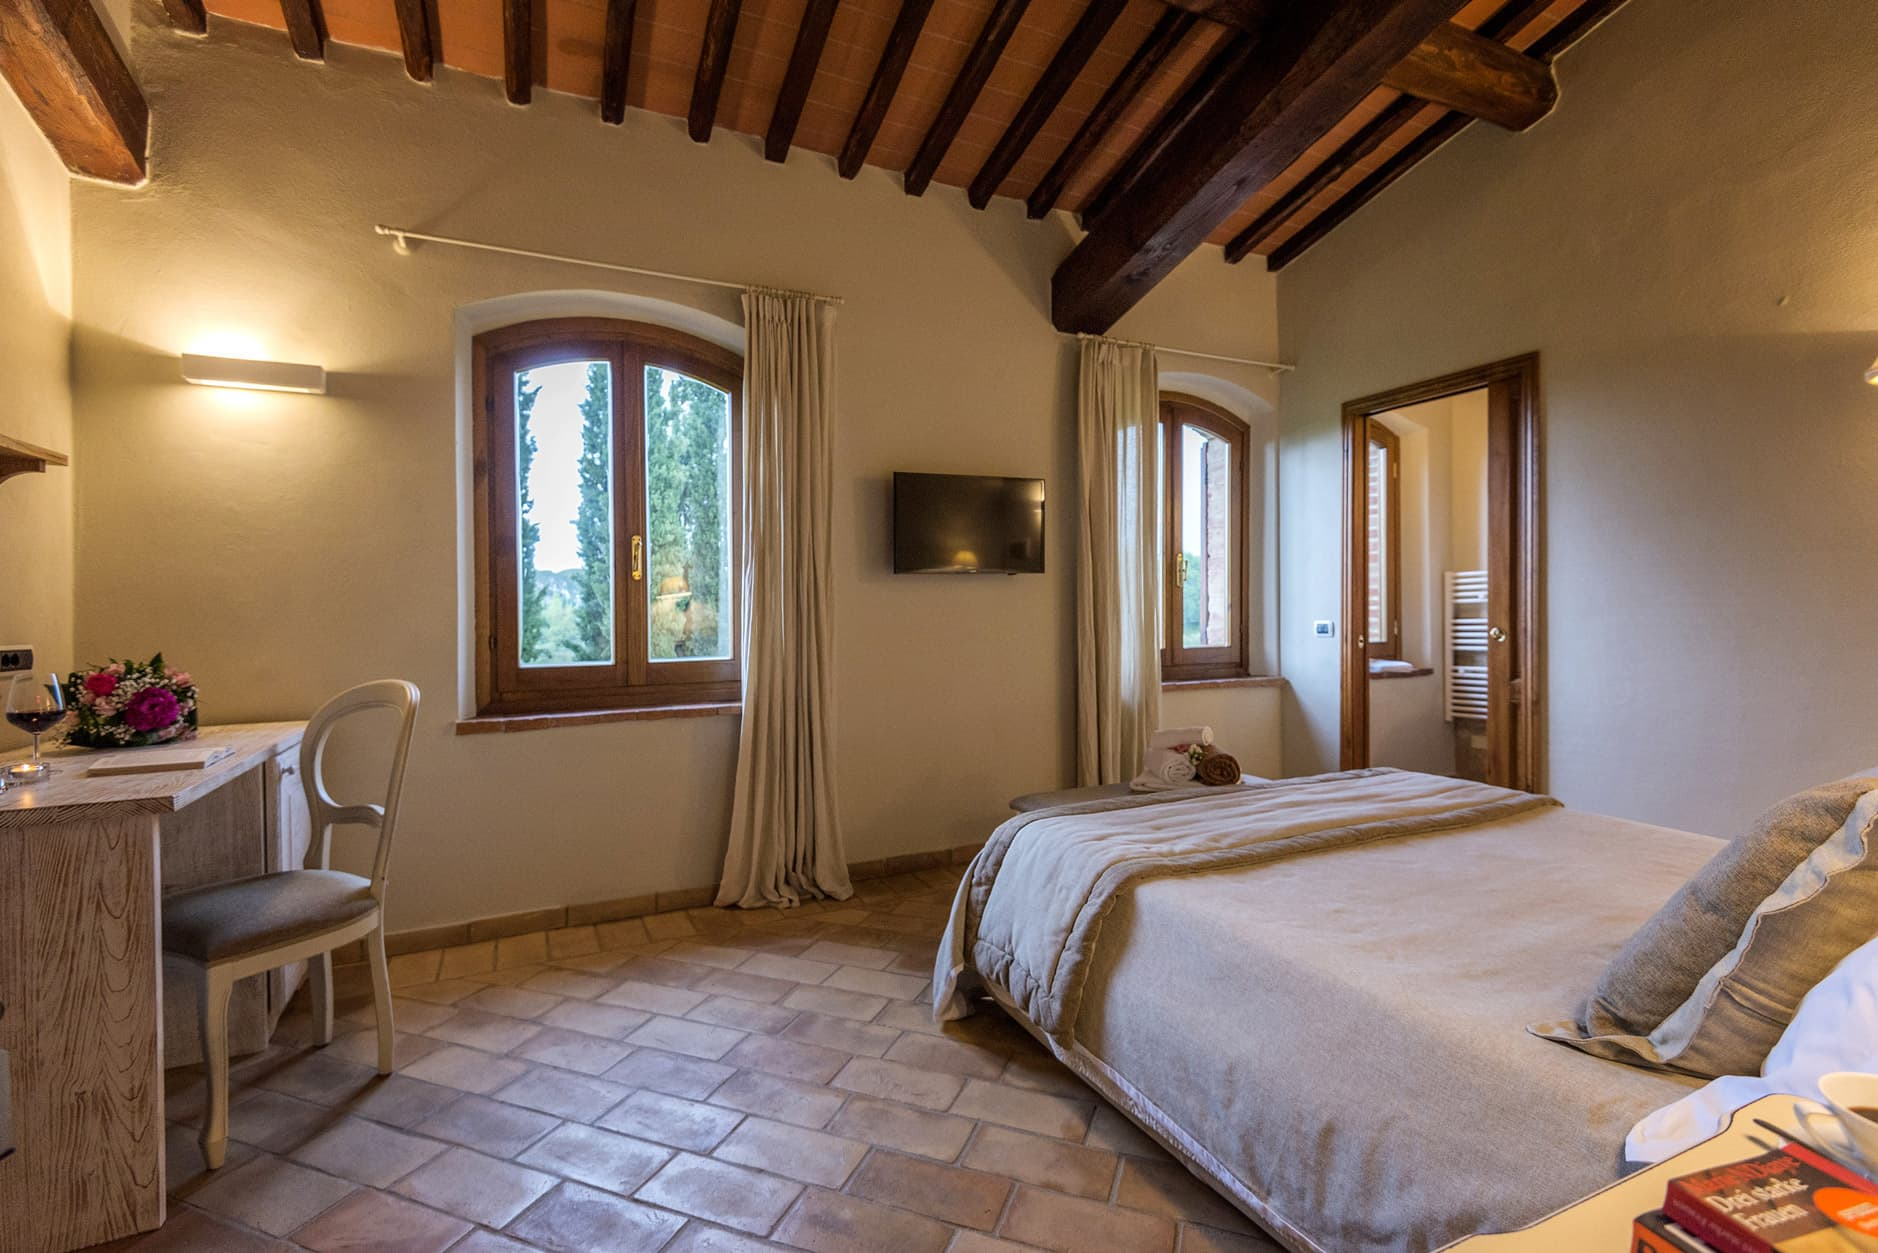 Camere bed and breakfast agriturismo a San Gimignano b&b in Toscana